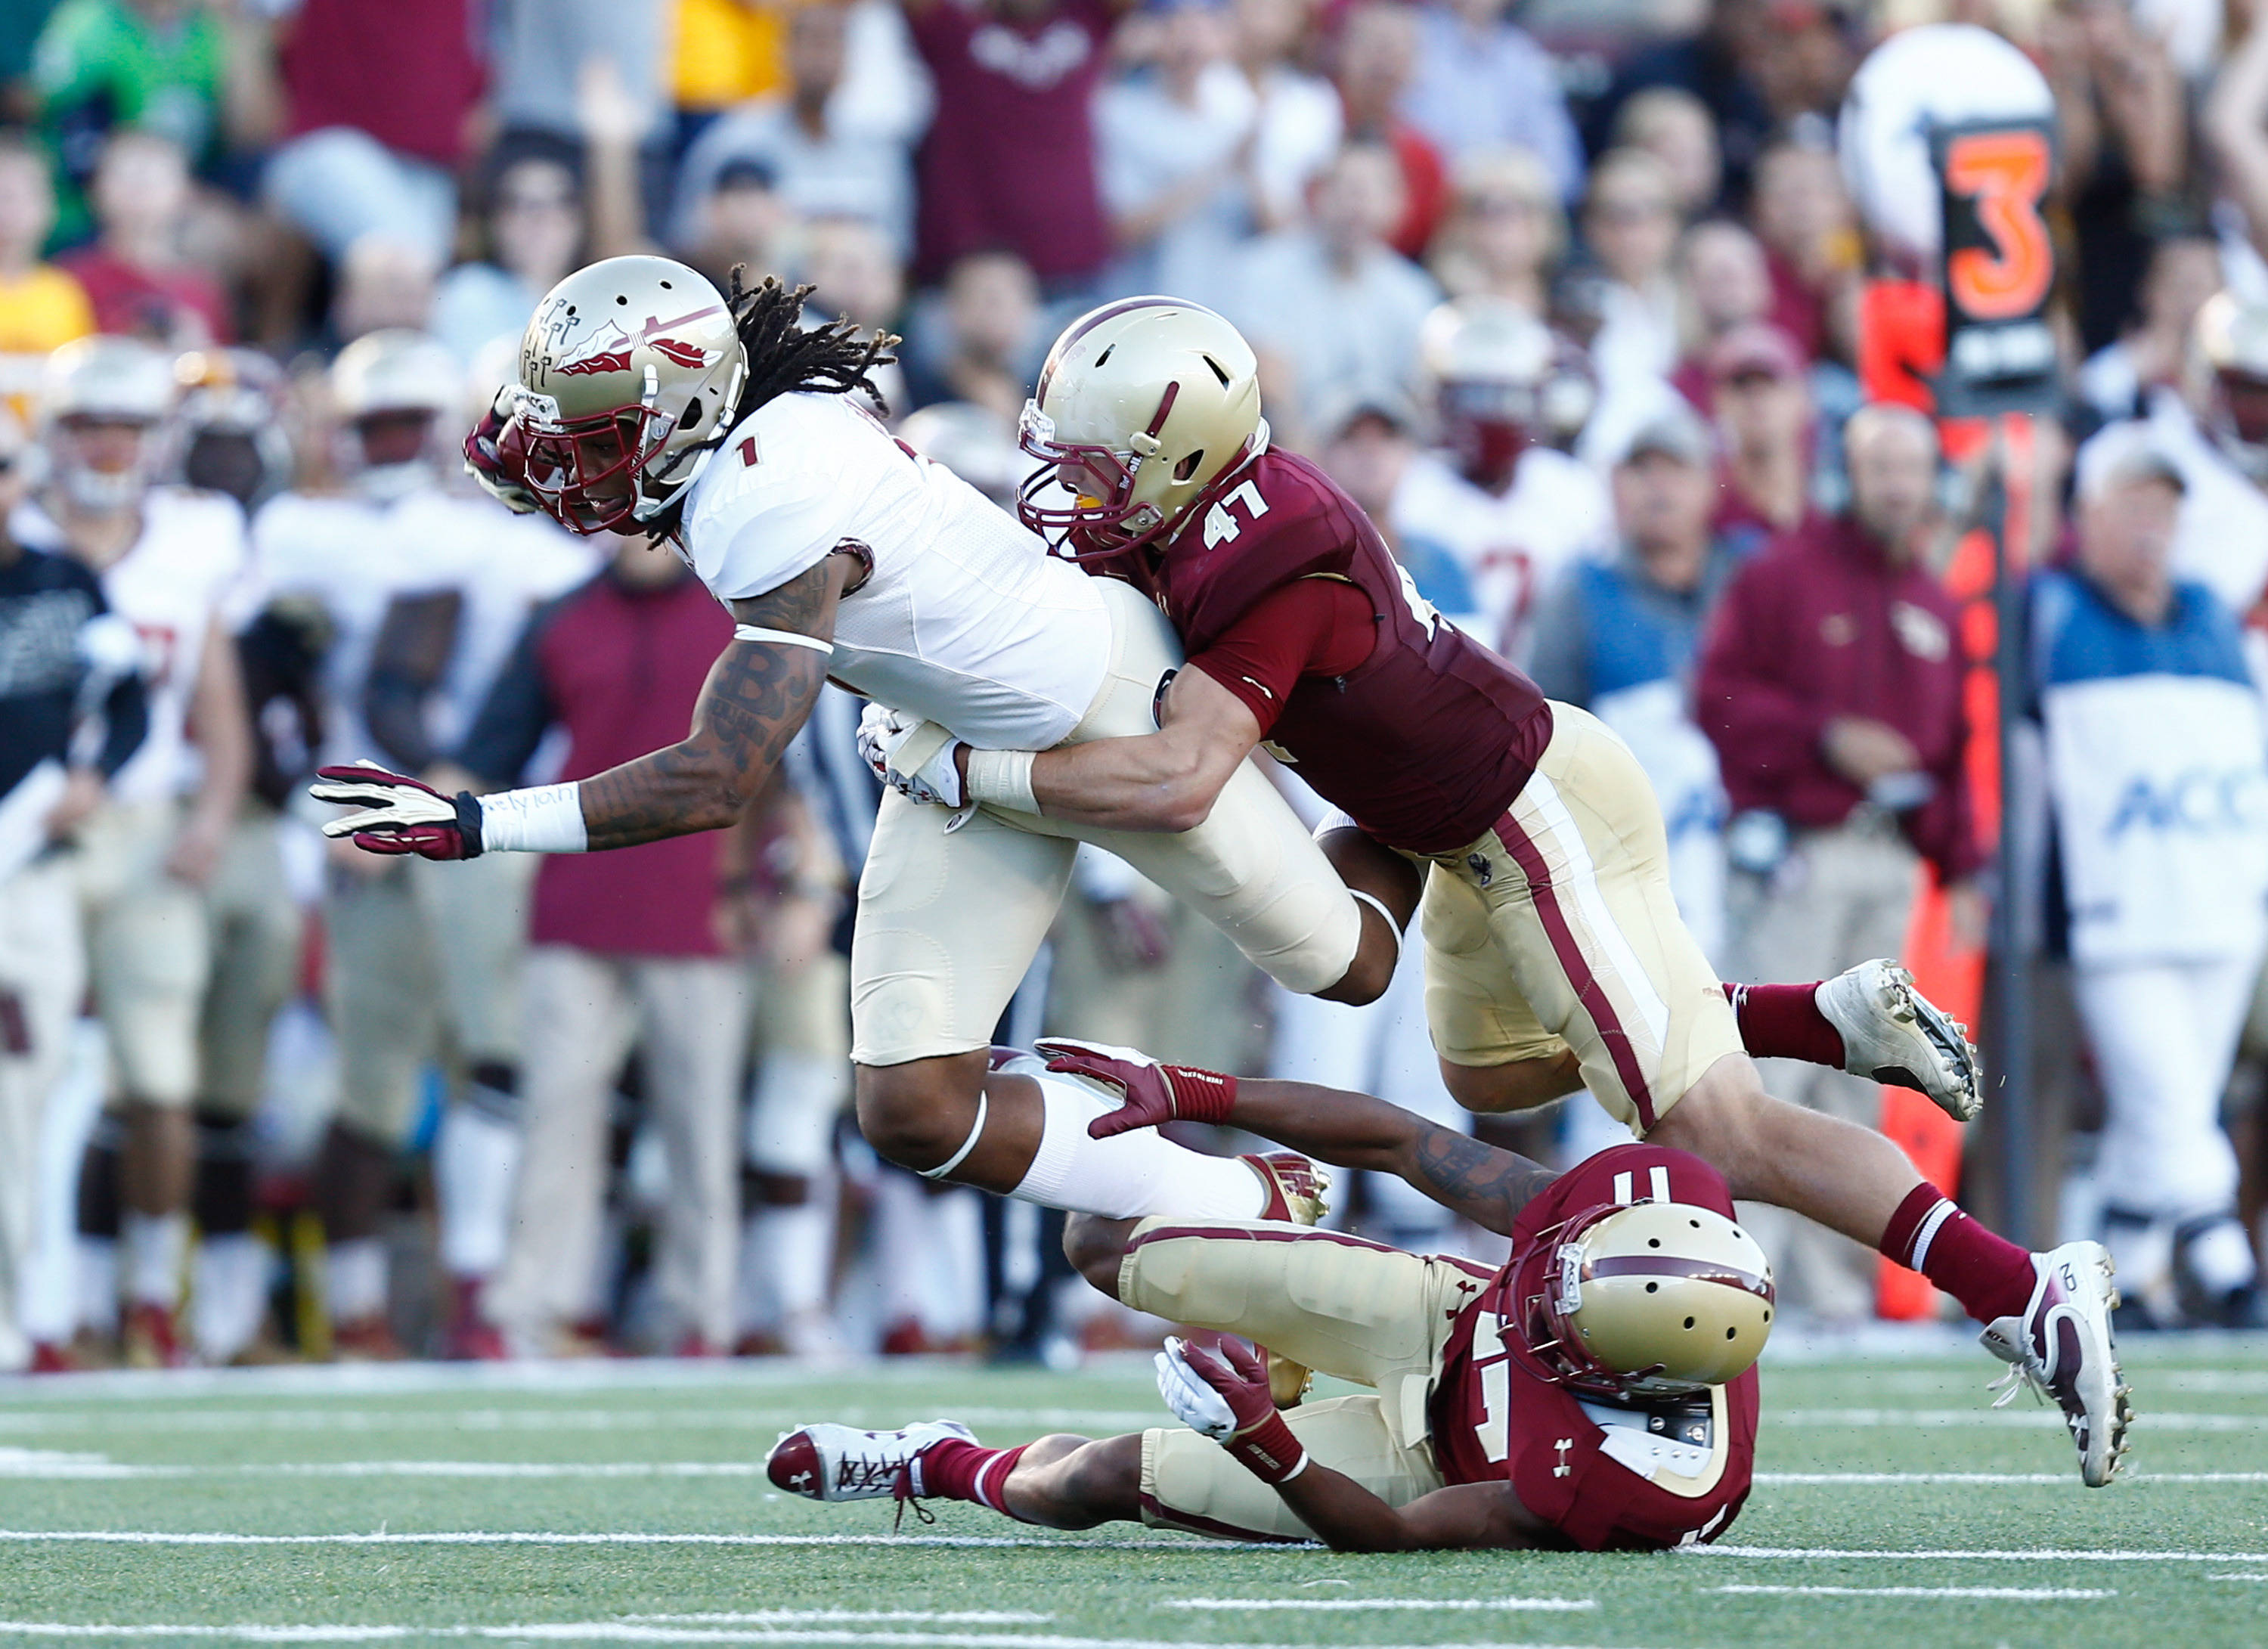 Kelvin Benjamin (1) is tackled by Boston College Eagles defensive back Bryce Jones (17) and defensive back Spenser Rositano (47). Mandatory Credit: Mark L. Baer-USA TODAY Sports